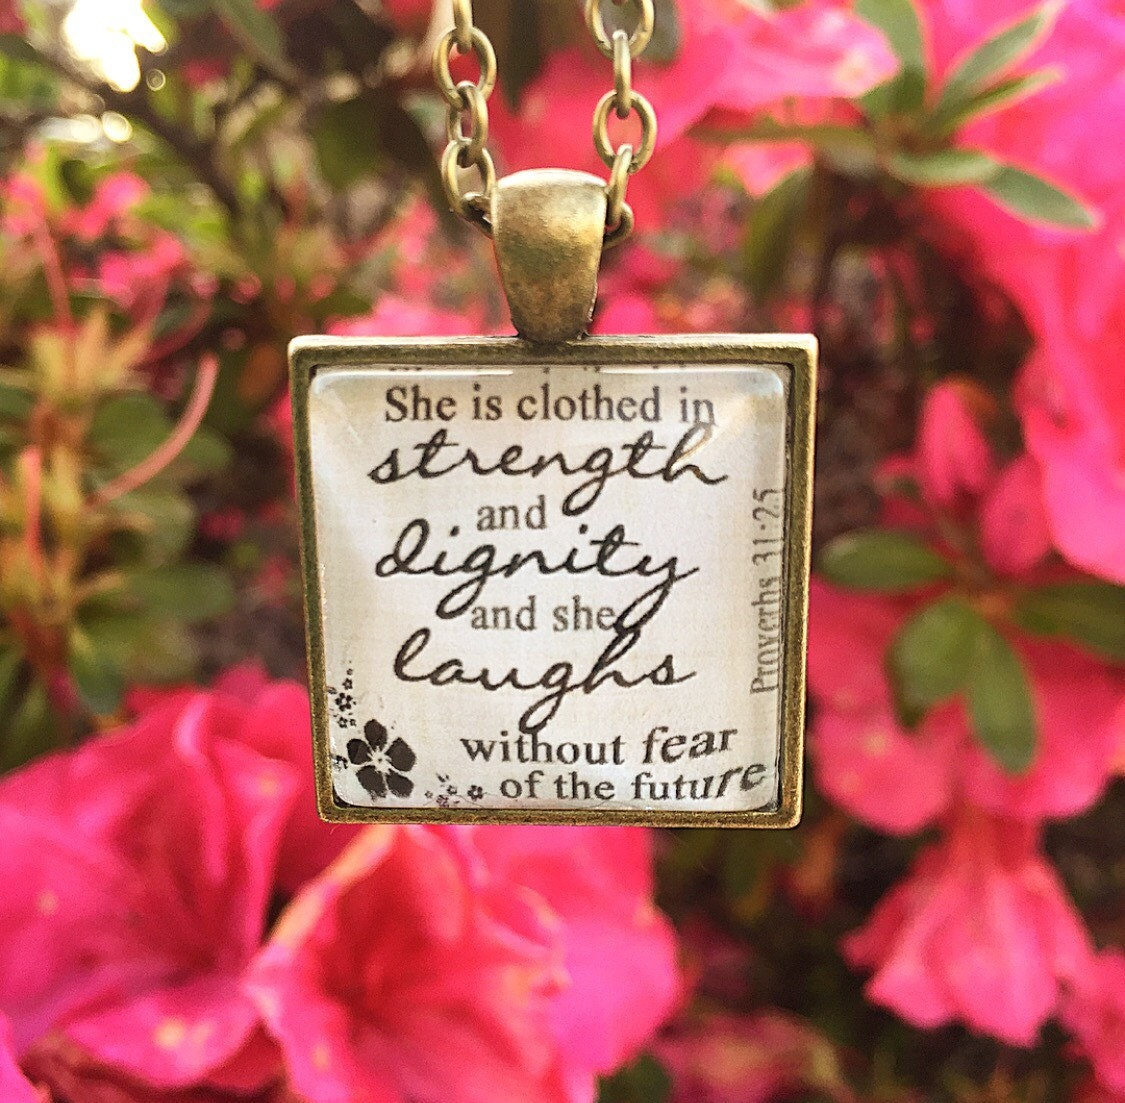 She Laughs In The Danger Of Fear: Bible Verse Pendant Necklace She Is Clothed In Strength